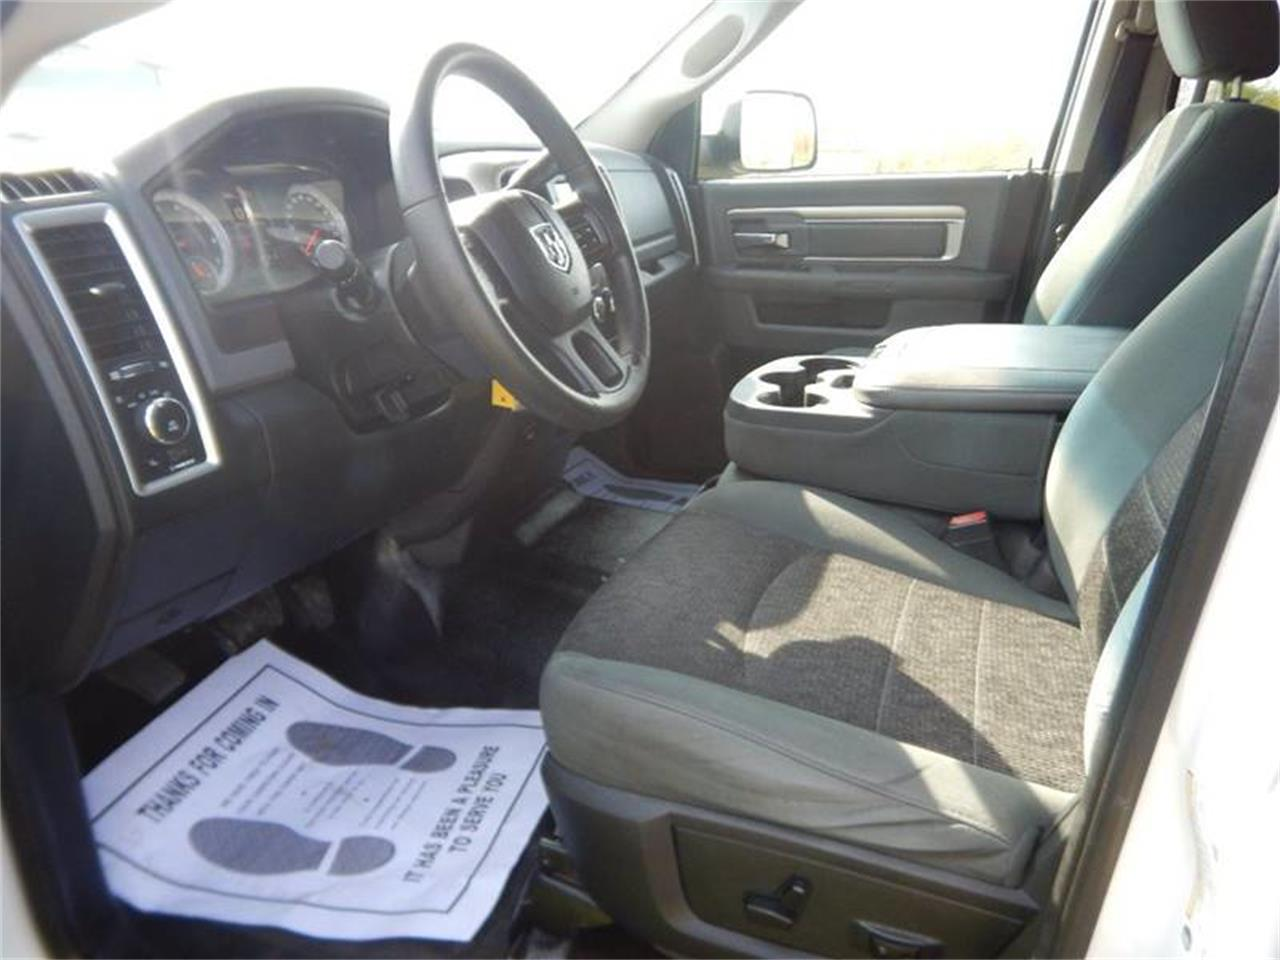 2014 Dodge Ram 2500 (CC-1259444) for sale in Clarence, Iowa